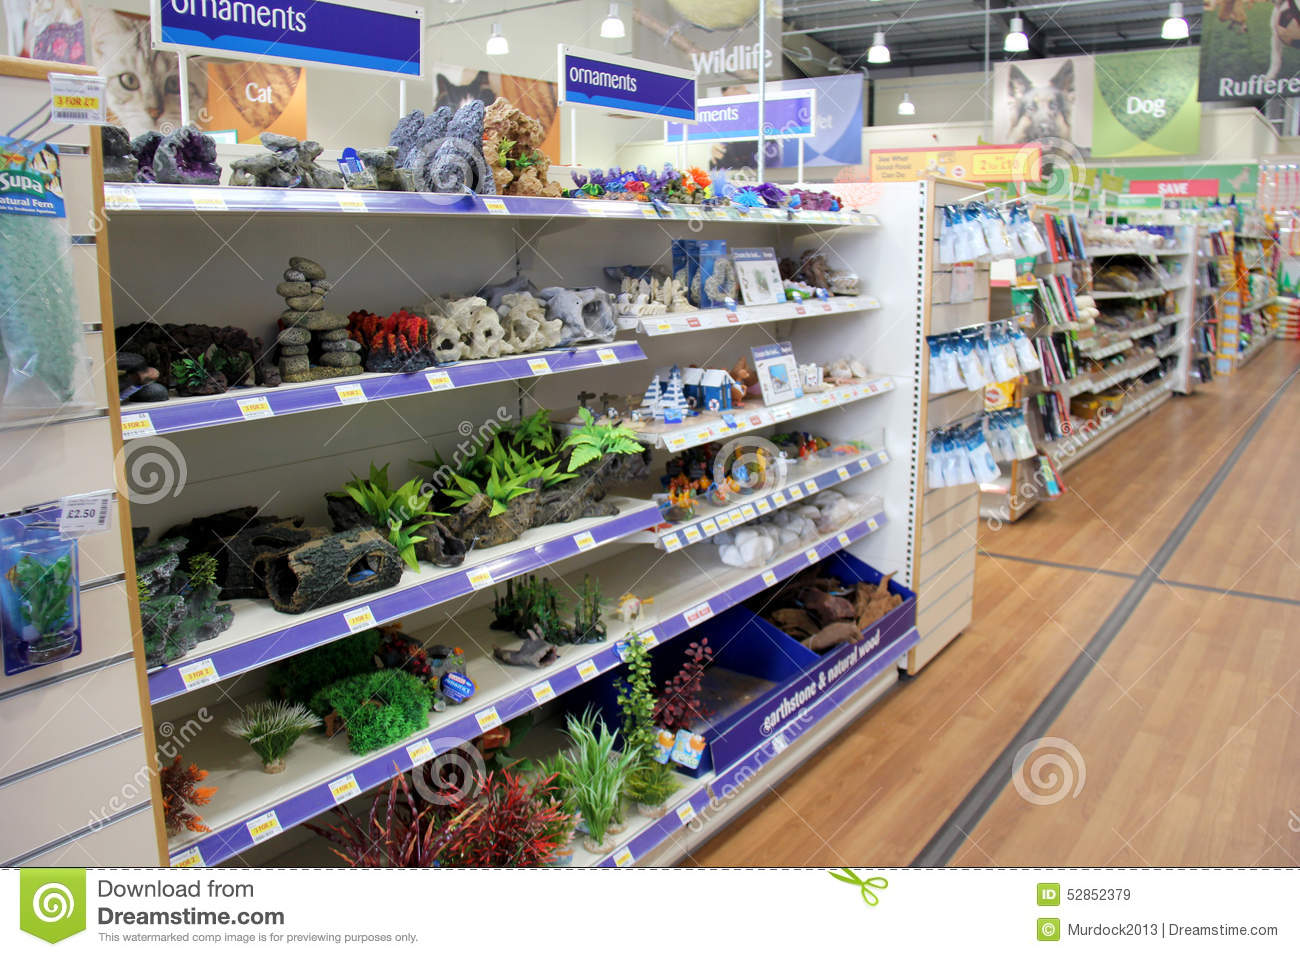 Tropical fish products editorial stock image  Image of store - 52852379